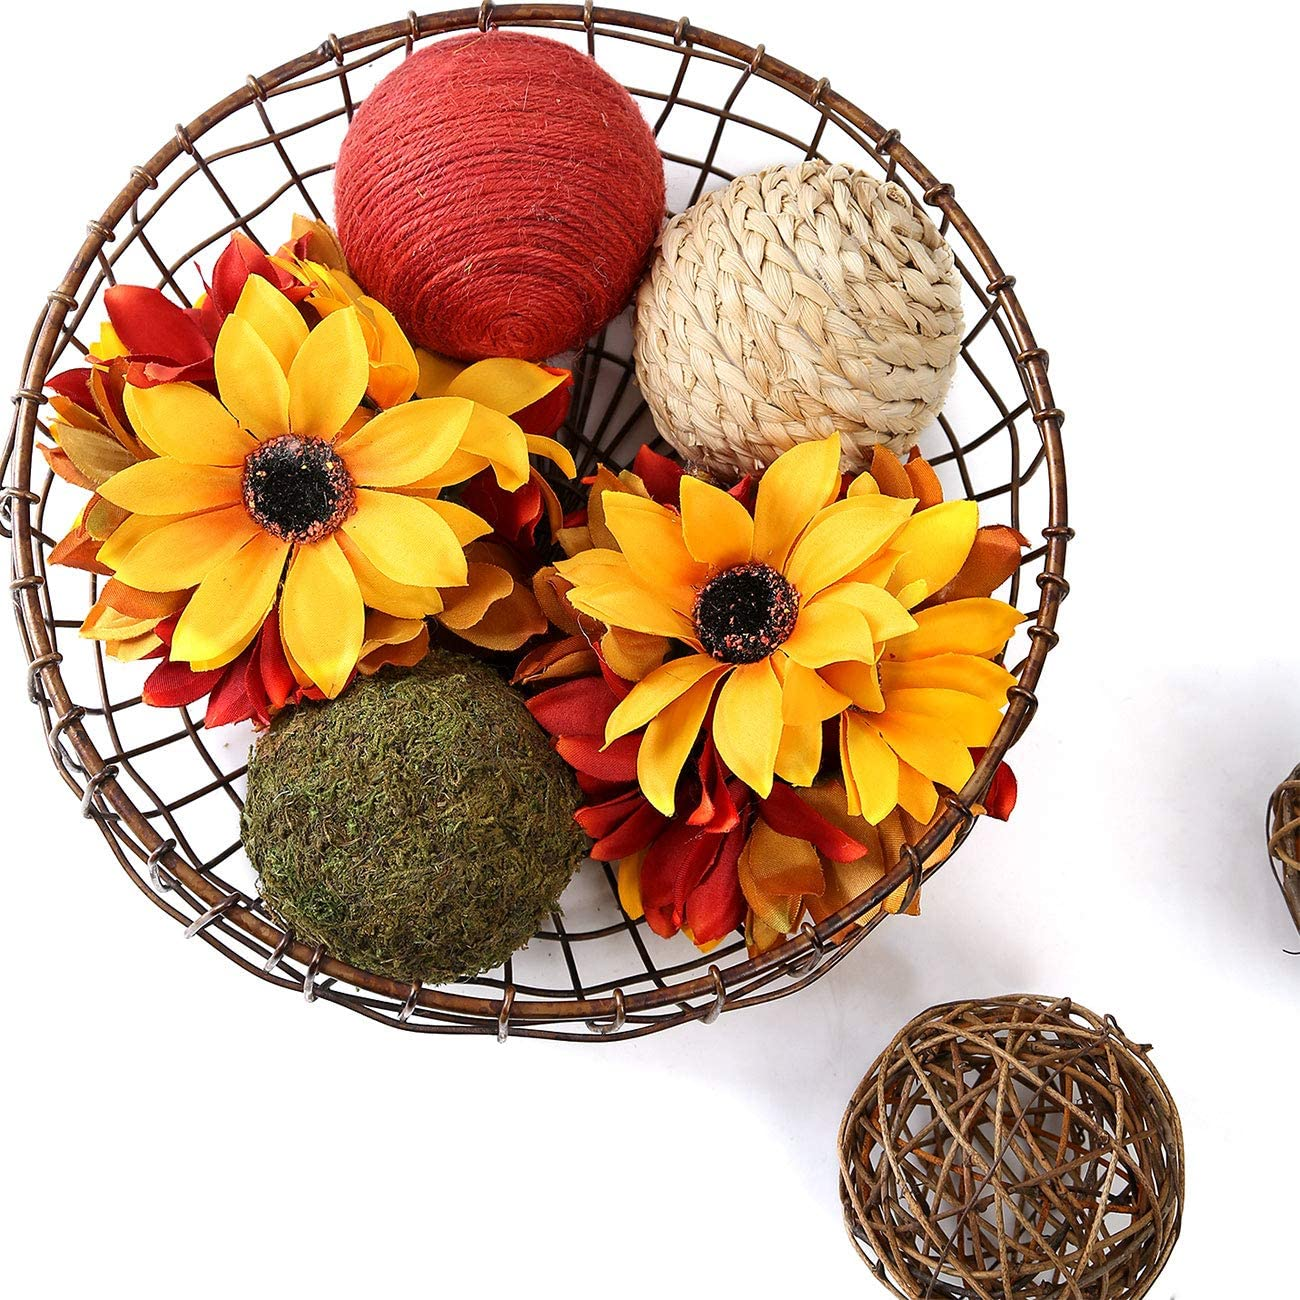 Ciroases 6 Pcs Fall Decorative Balls for Bowls Green Moss Decorative Ball Sunflower Balls Rattan Wicker Balls Orb Grapevine Ball, Home Decor Vase Fillers for Craft Project, Wedding Table Decoration